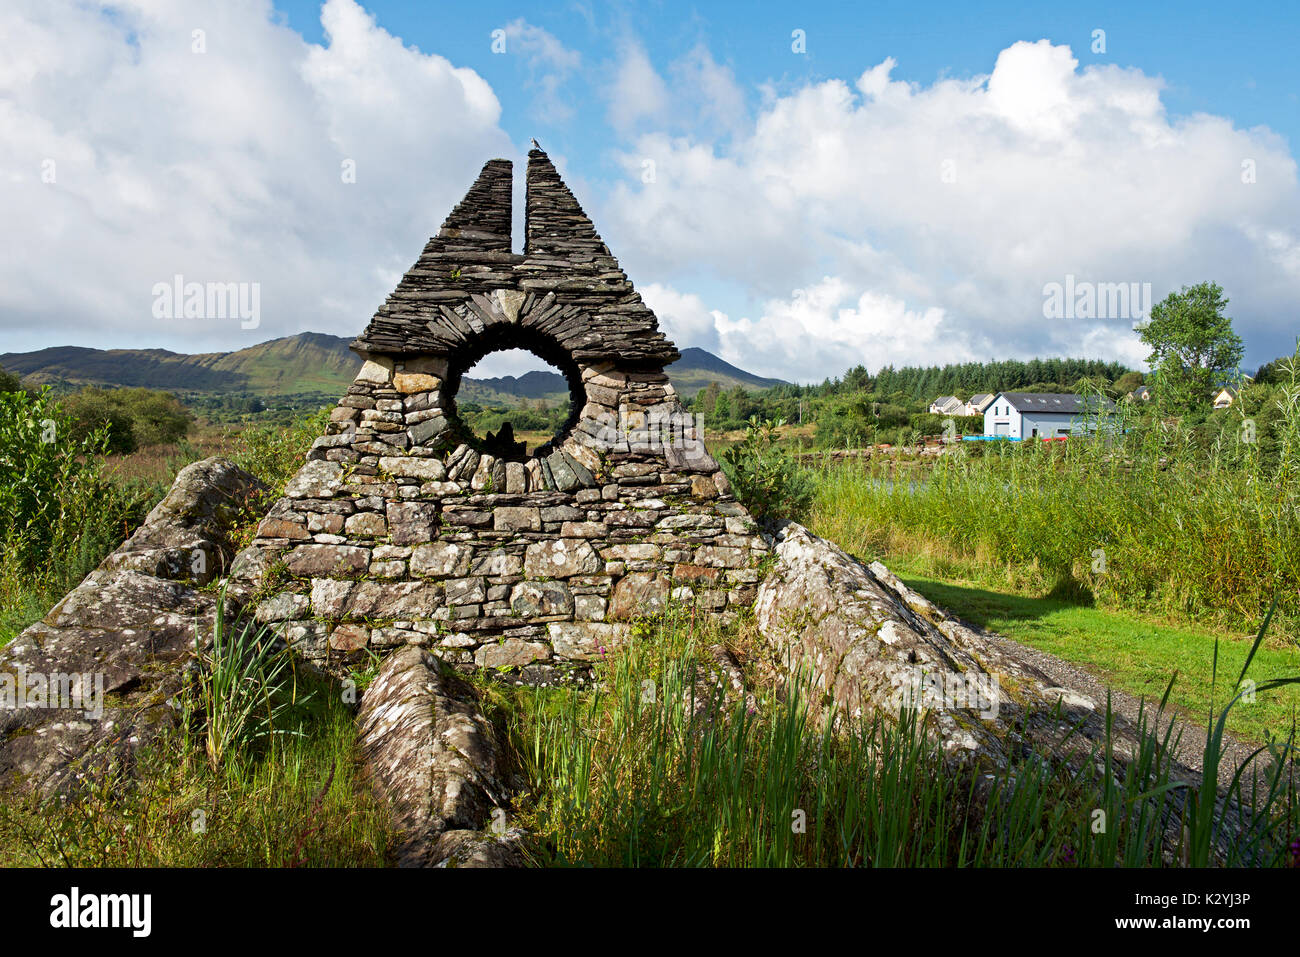 Artworks in stone - The way the fairies went - Sneem,Iveragh Peninsula,co Kerry,Southern Ireland - Stock Image